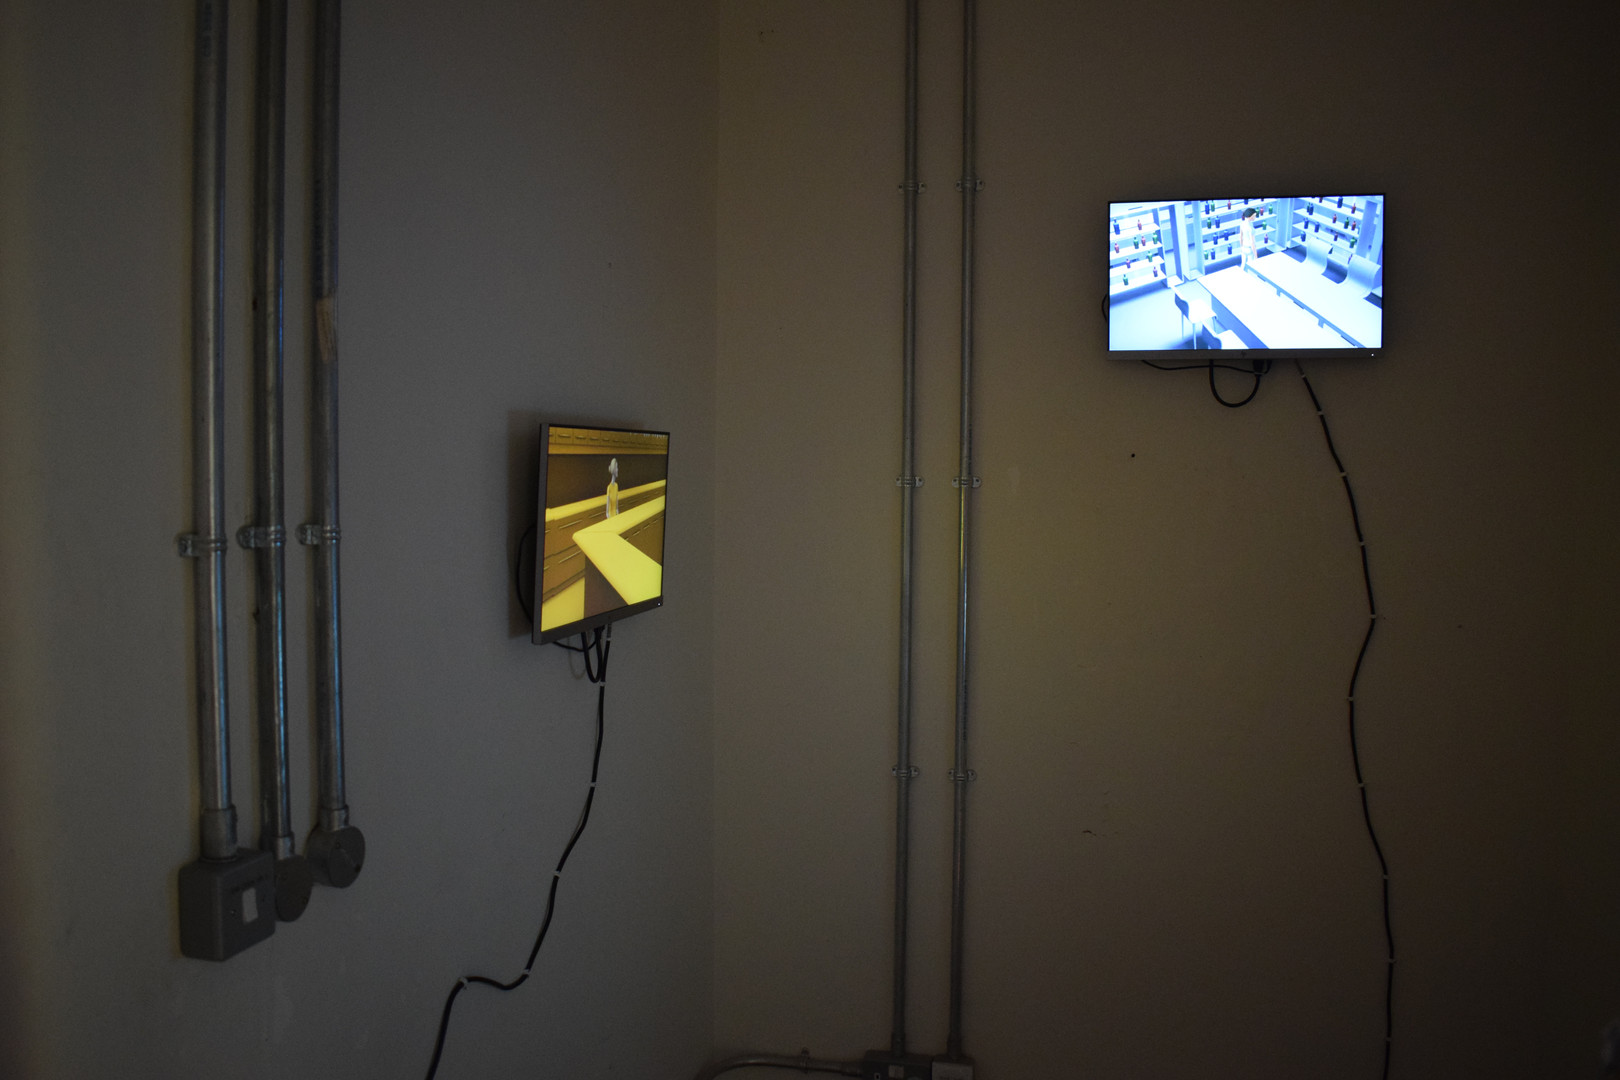 Installation view of Kernel of Truth and Safe Haven, 2019. Edinburgh College of Art Degree Show.